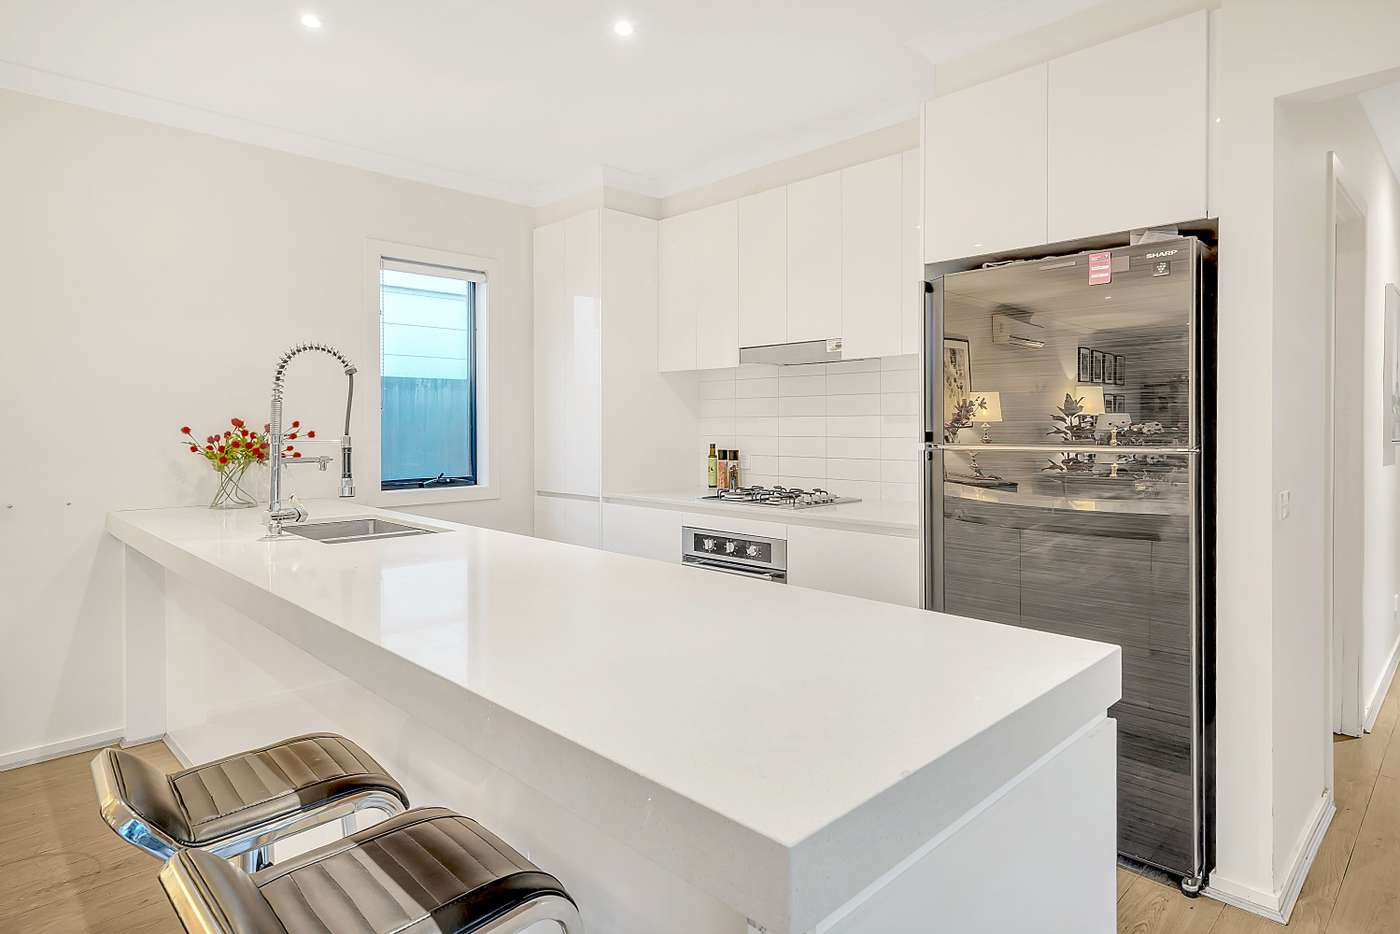 Sixth view of Homely house listing, 21 Cavalier Drive, Craigieburn VIC 3064